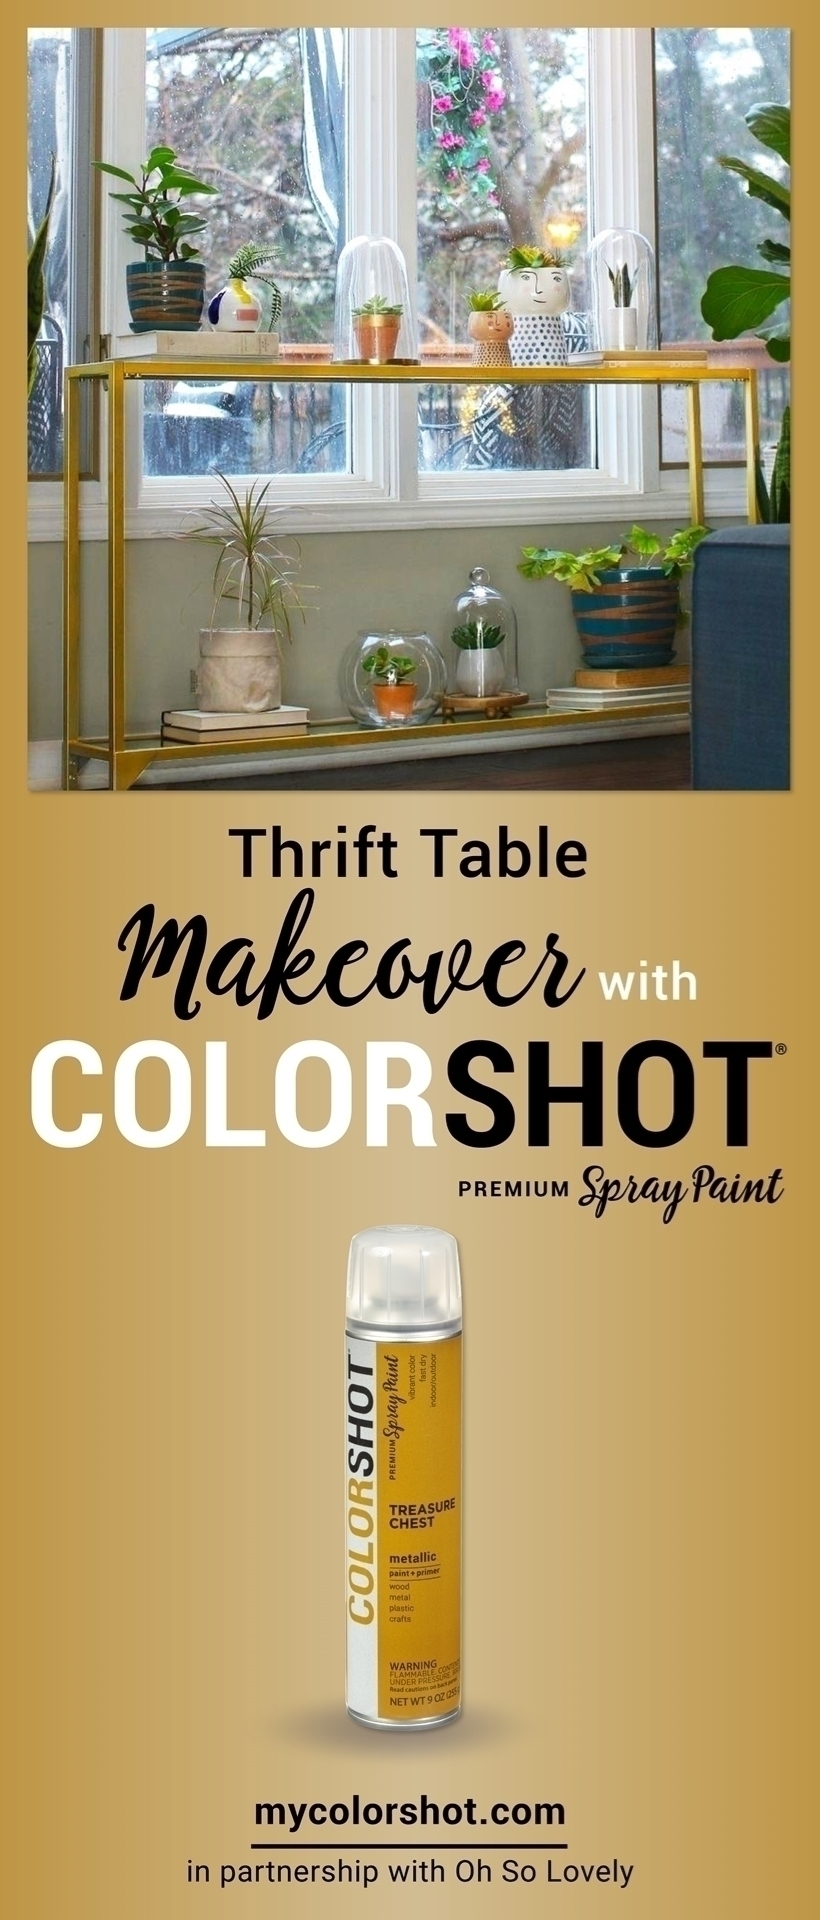 Easy Home Improvement DIY with Spray Paint